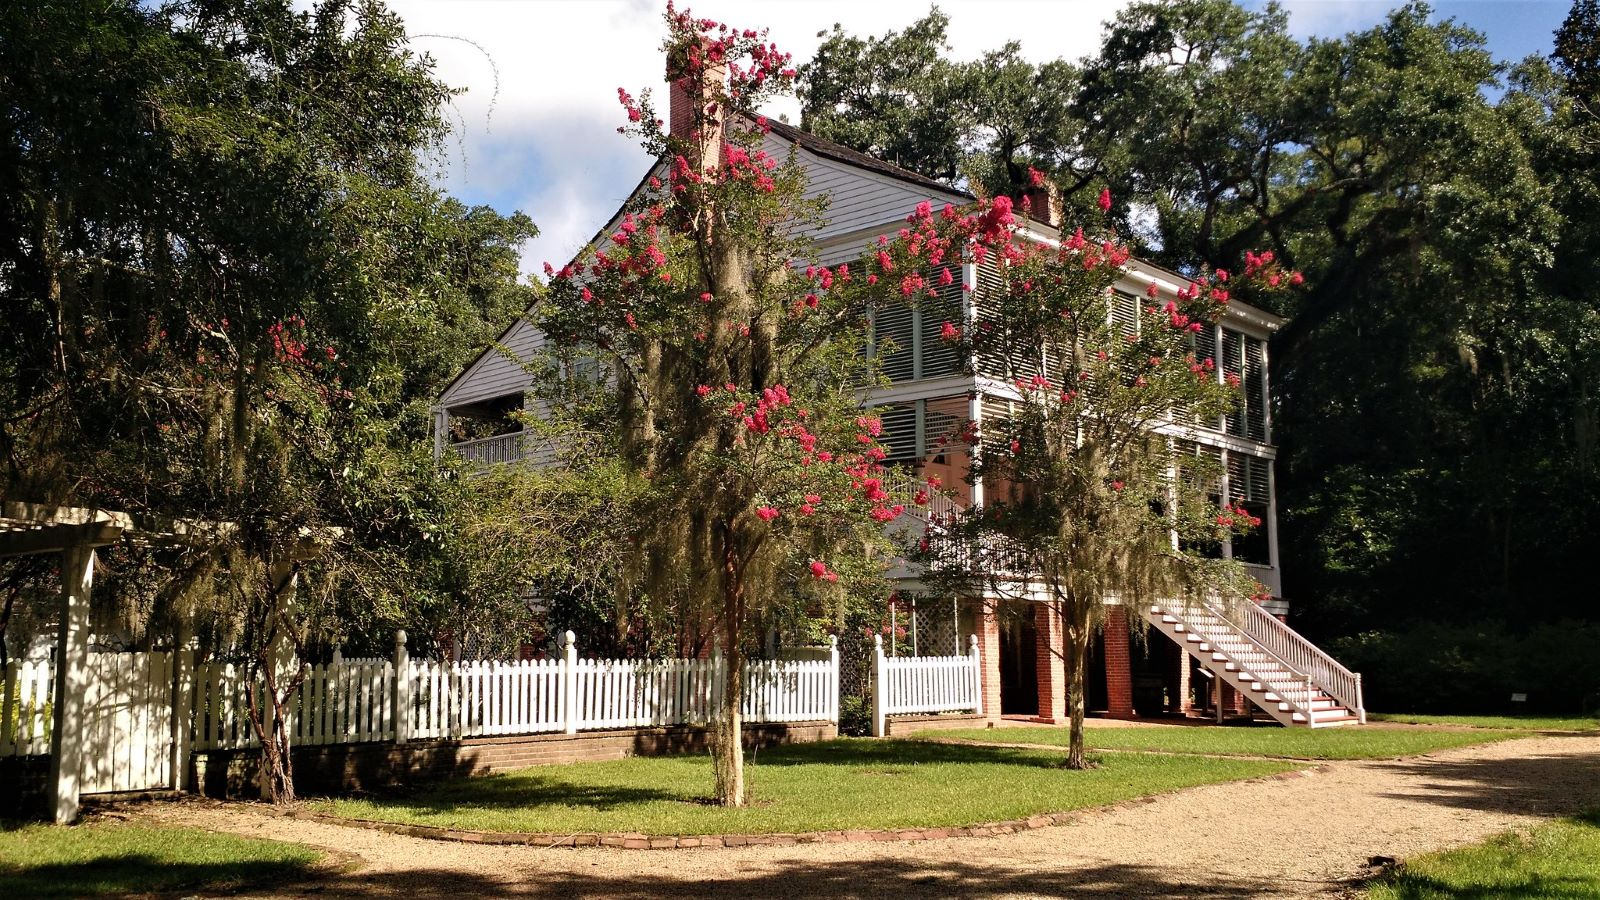 Southern style home with enclosed front veranda and back porch surrounded by a white picket fence with two trees with red flowers out front